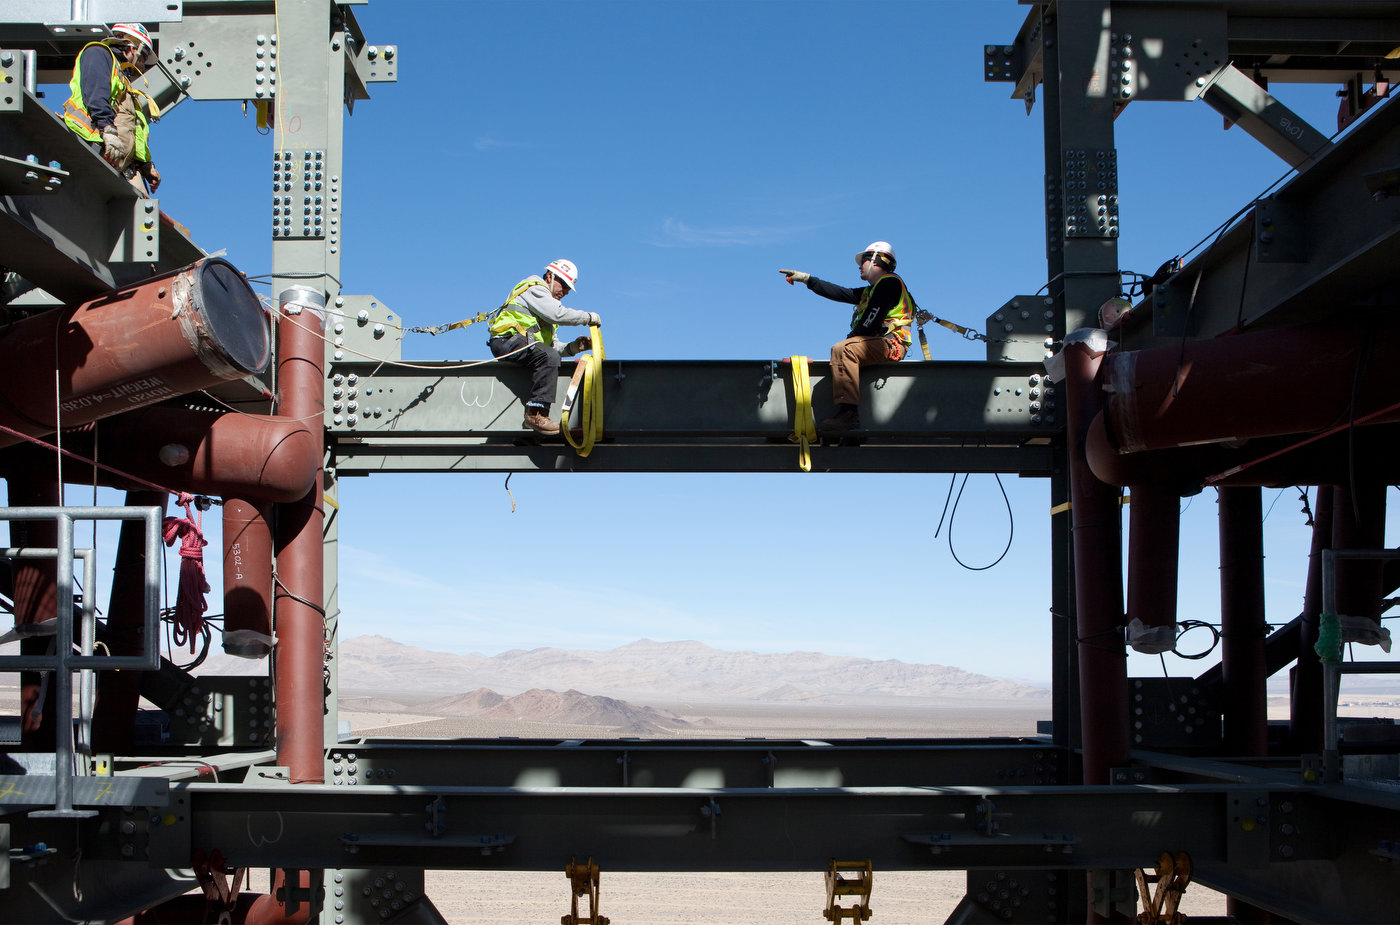 IVANPAH, CALIFORNIA, FEBRUARY 08 2012: Workers rig a steal beam on the top of Ivanpah's Tower One (photo Gilles Mingasson/Getty Images for Bechtel).